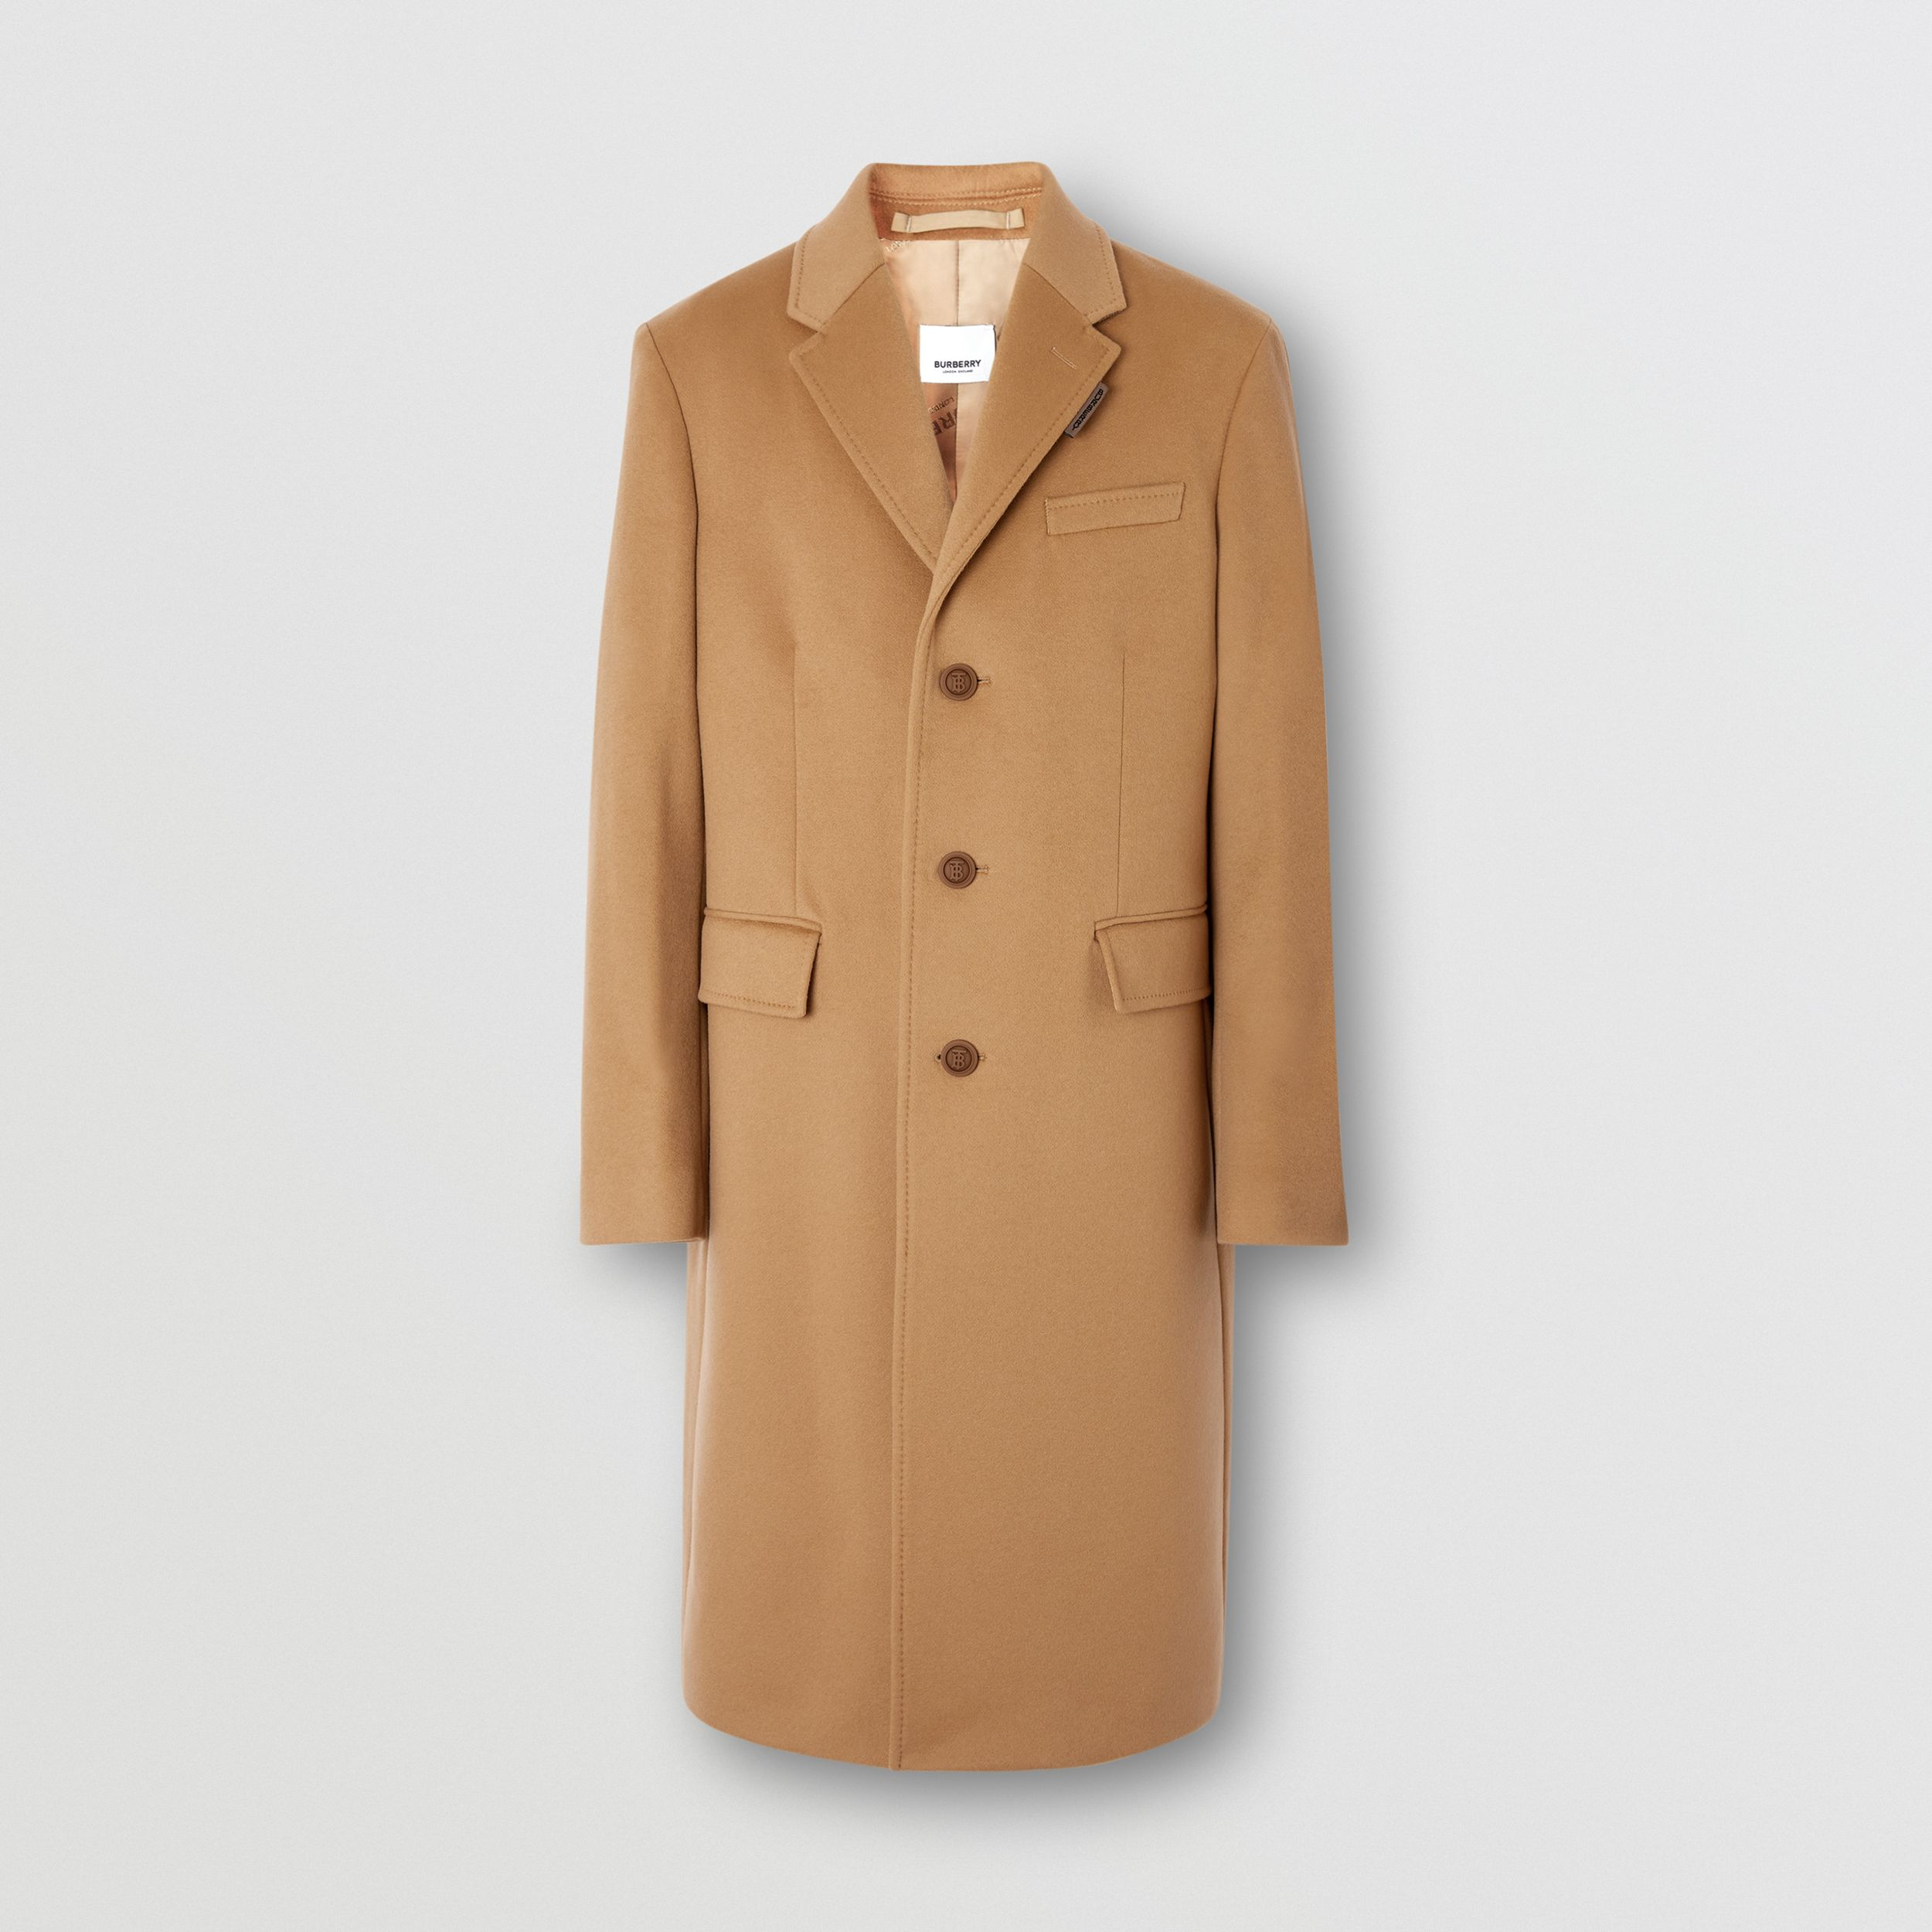 Button Detail Wool Cashmere Tailored Coat in Camel - Men | Burberry - 4